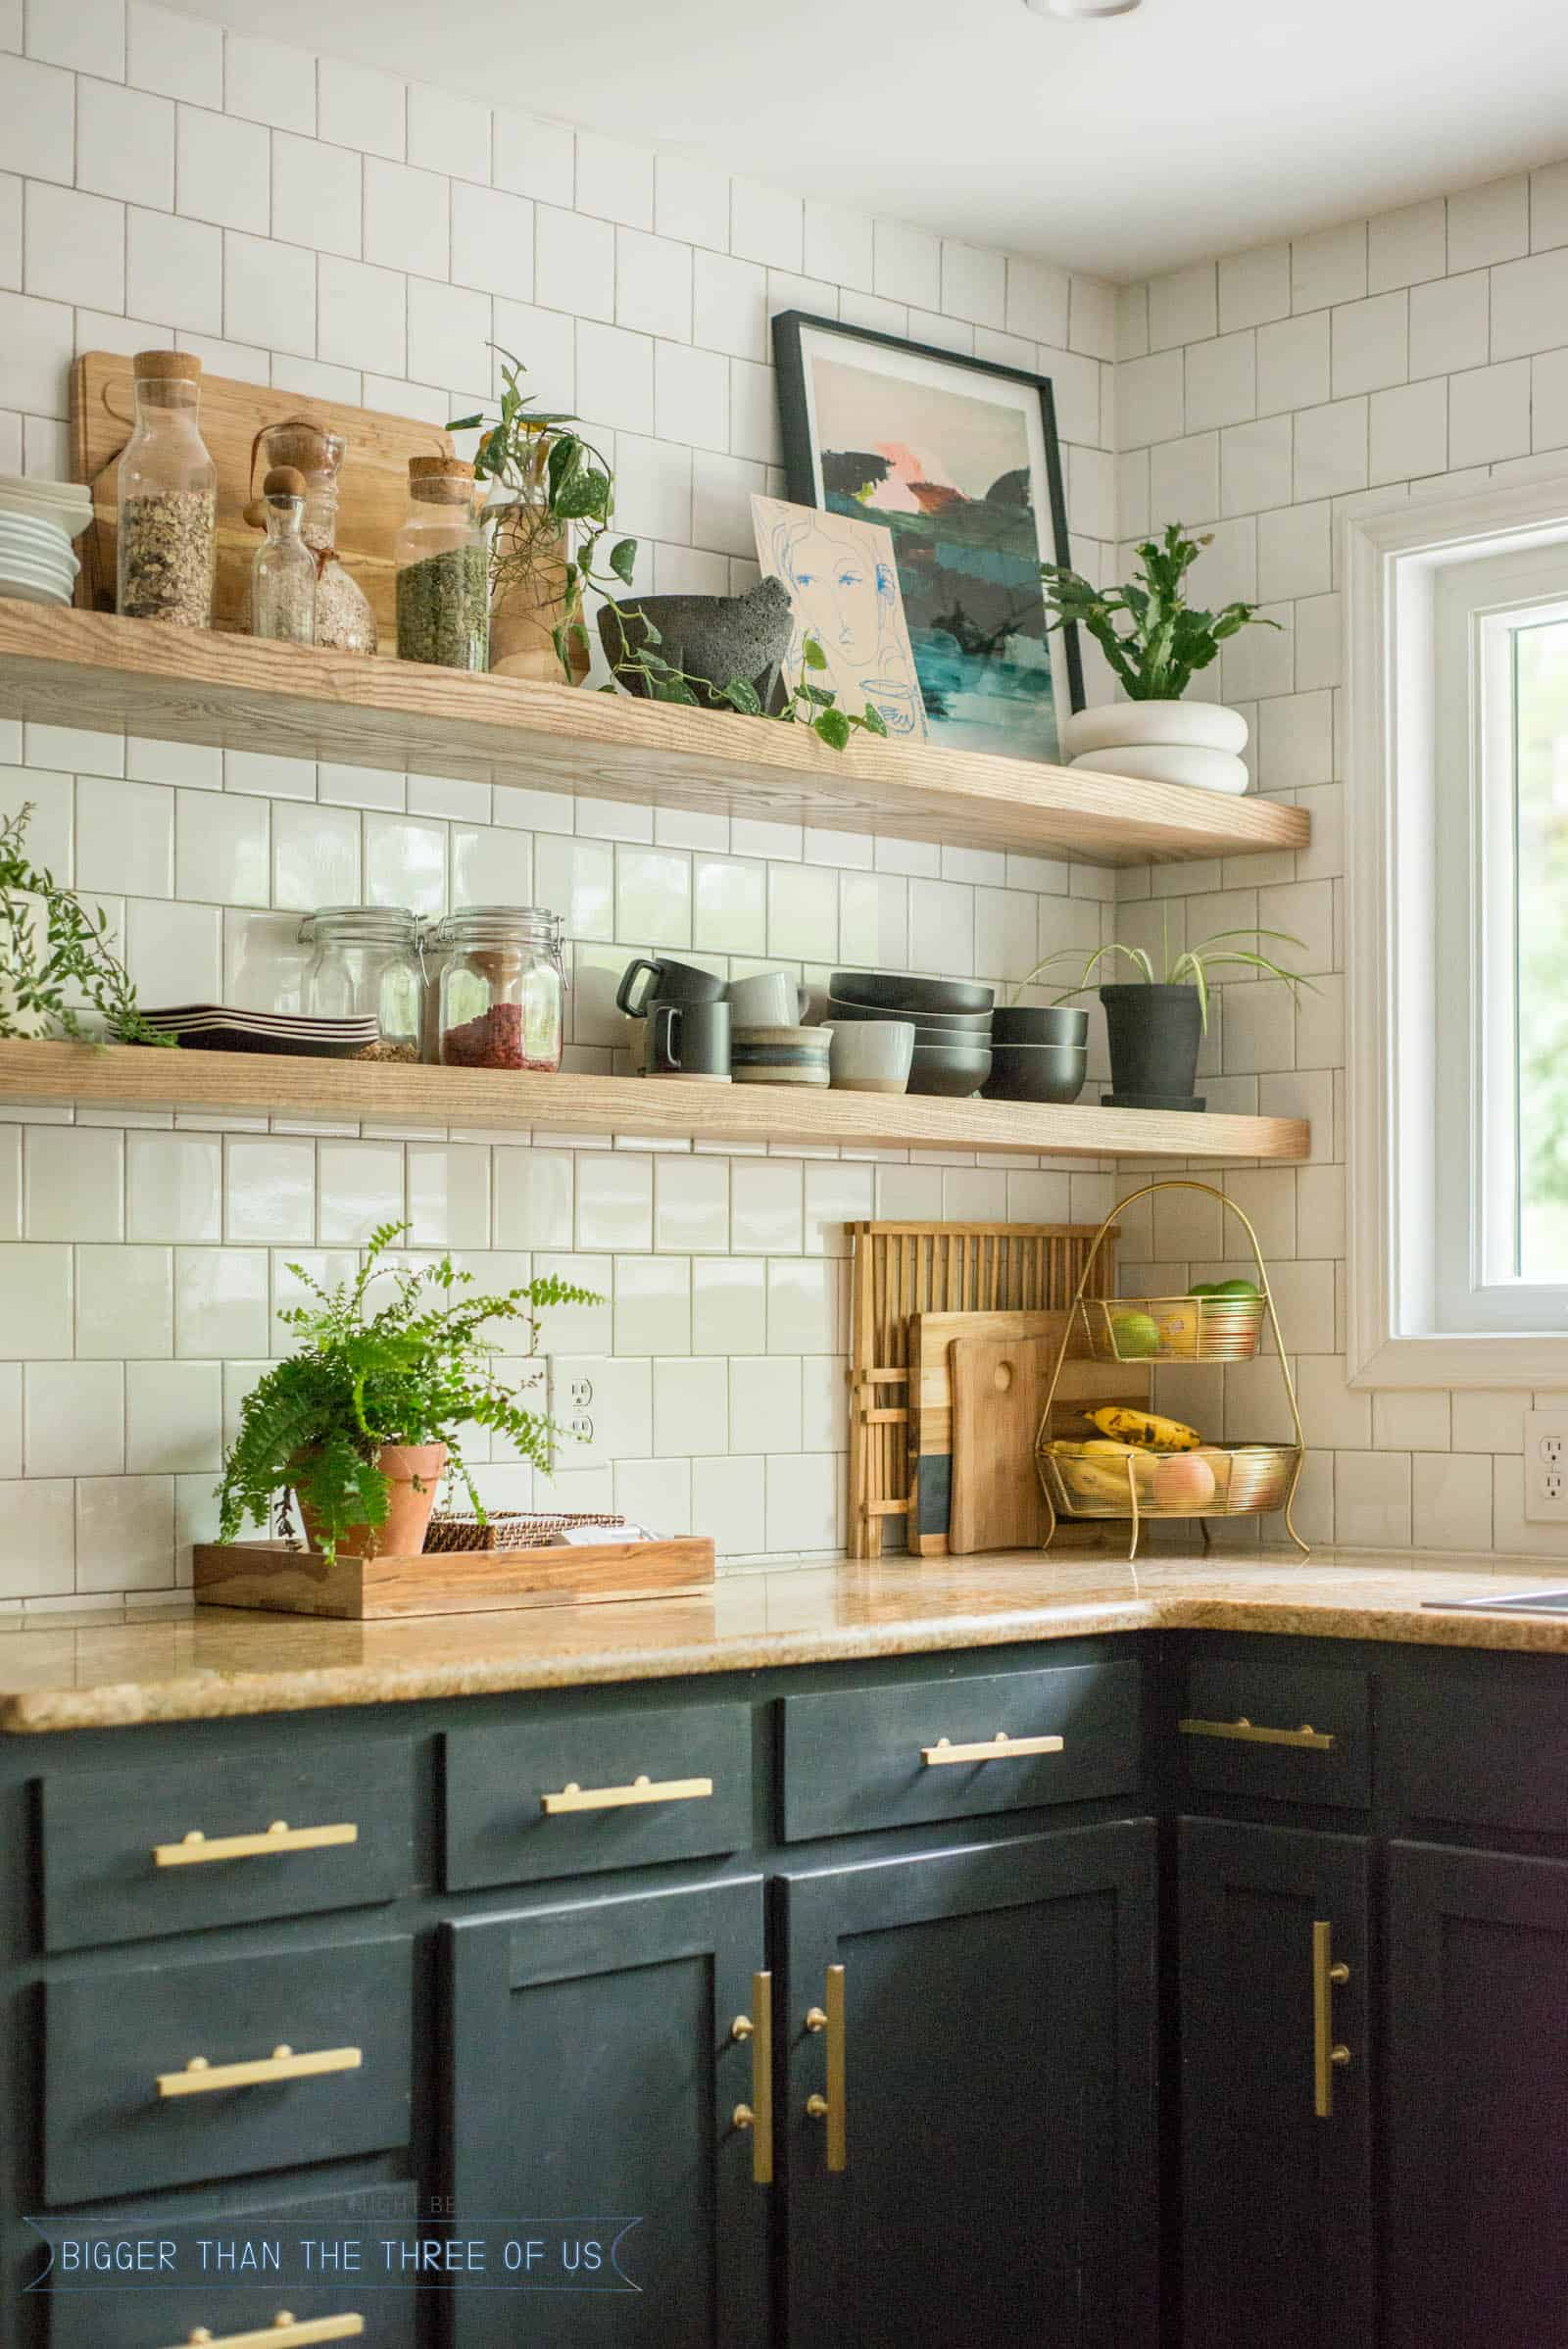 diy open shelving kitchen guide bigger than the three floating shelves that hold lot weight ideas hidden countertop support high gloss cabinets chair leg covers distressed wood